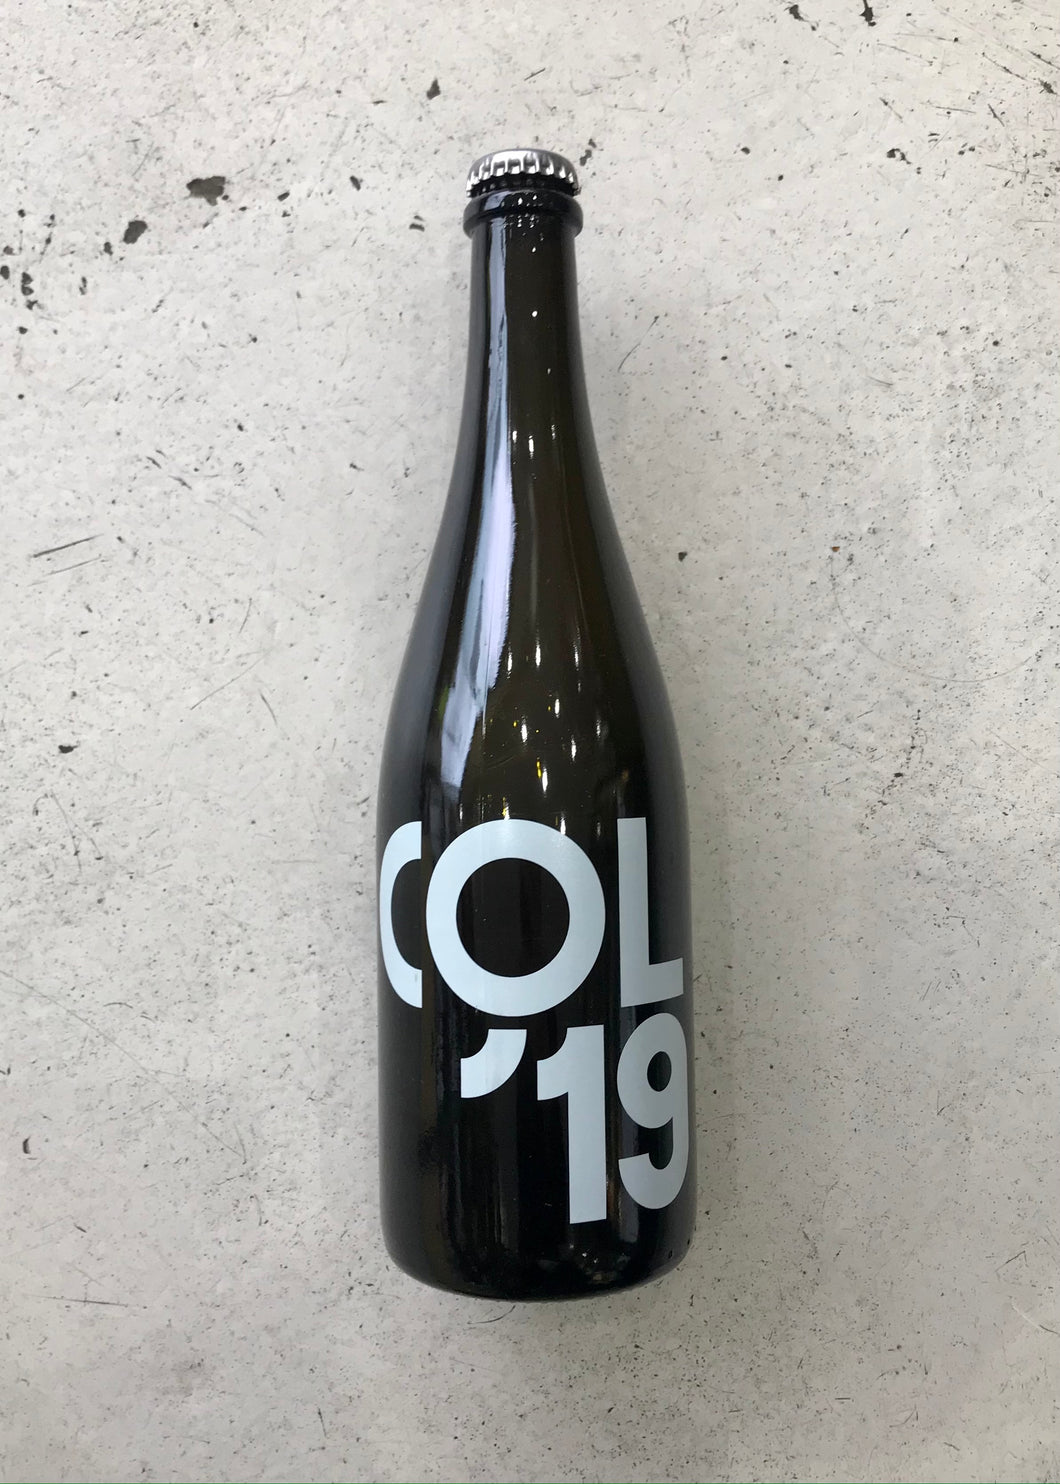 Tillingham Col 2019 9% (750ml)